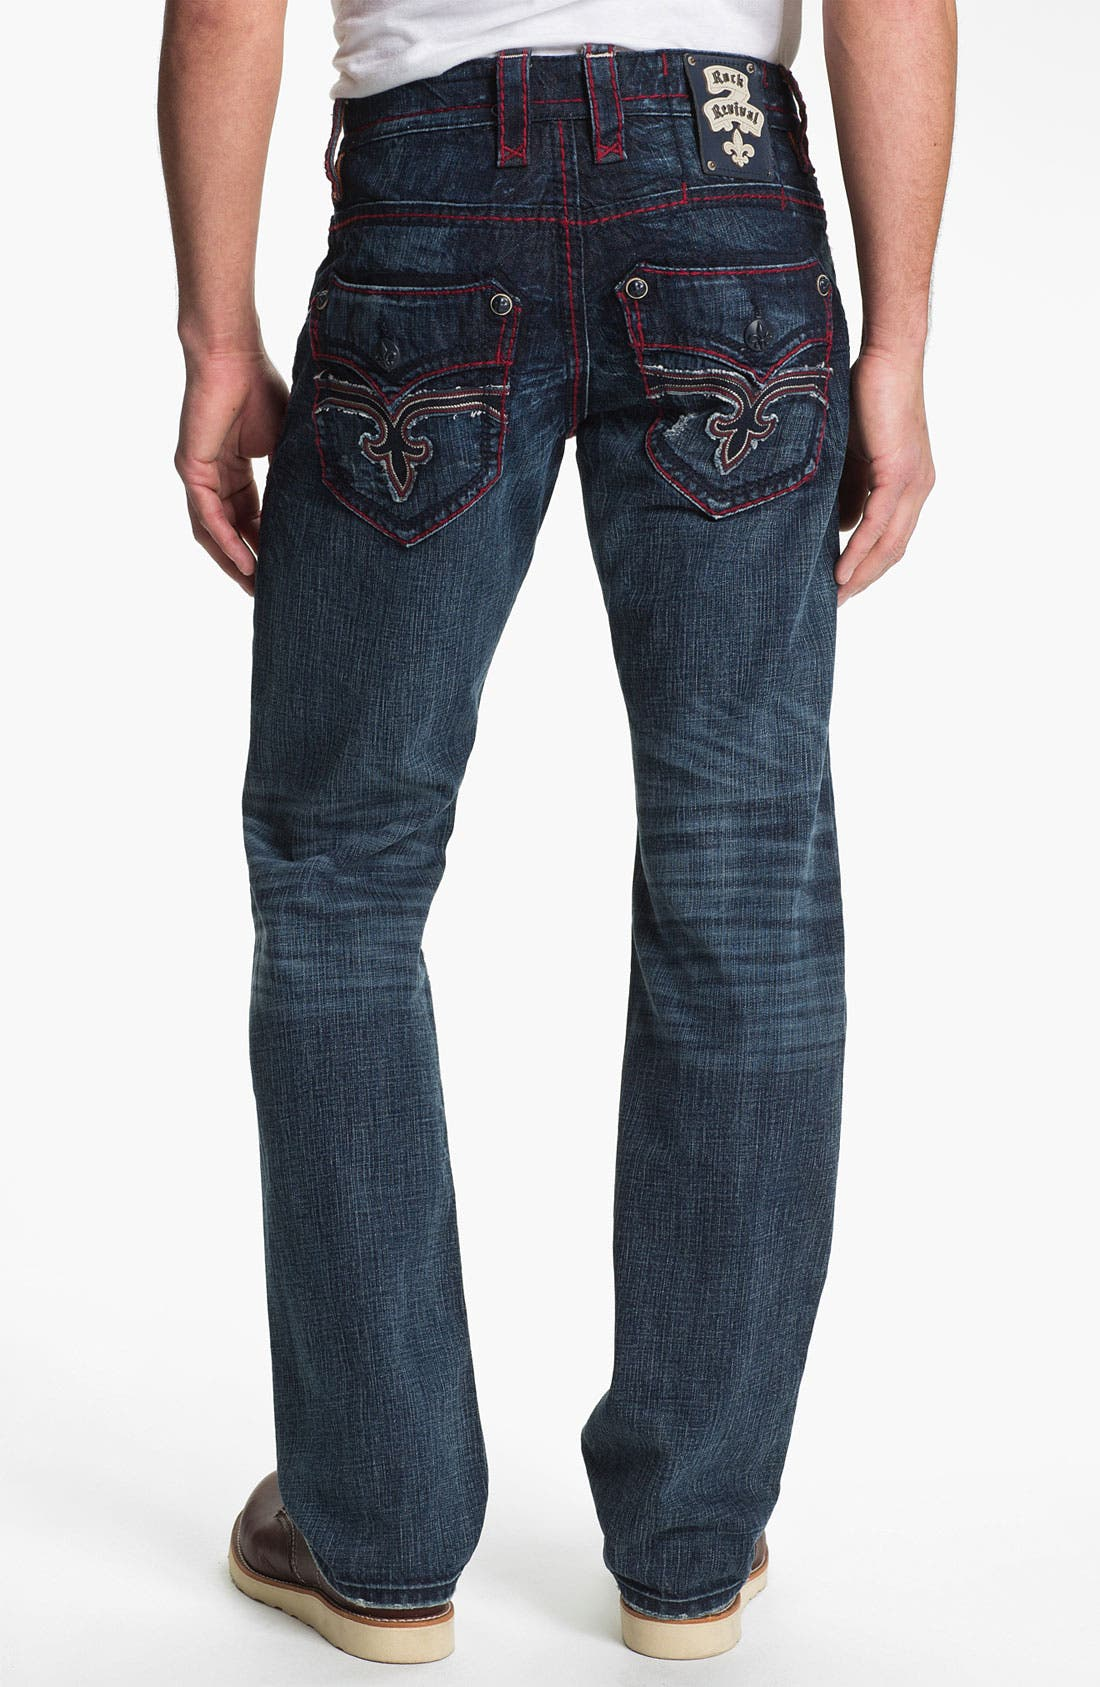 Alternate Image 1 Selected - Rock Revival 'Dan' Straight Leg Jeans (Dark Blue)